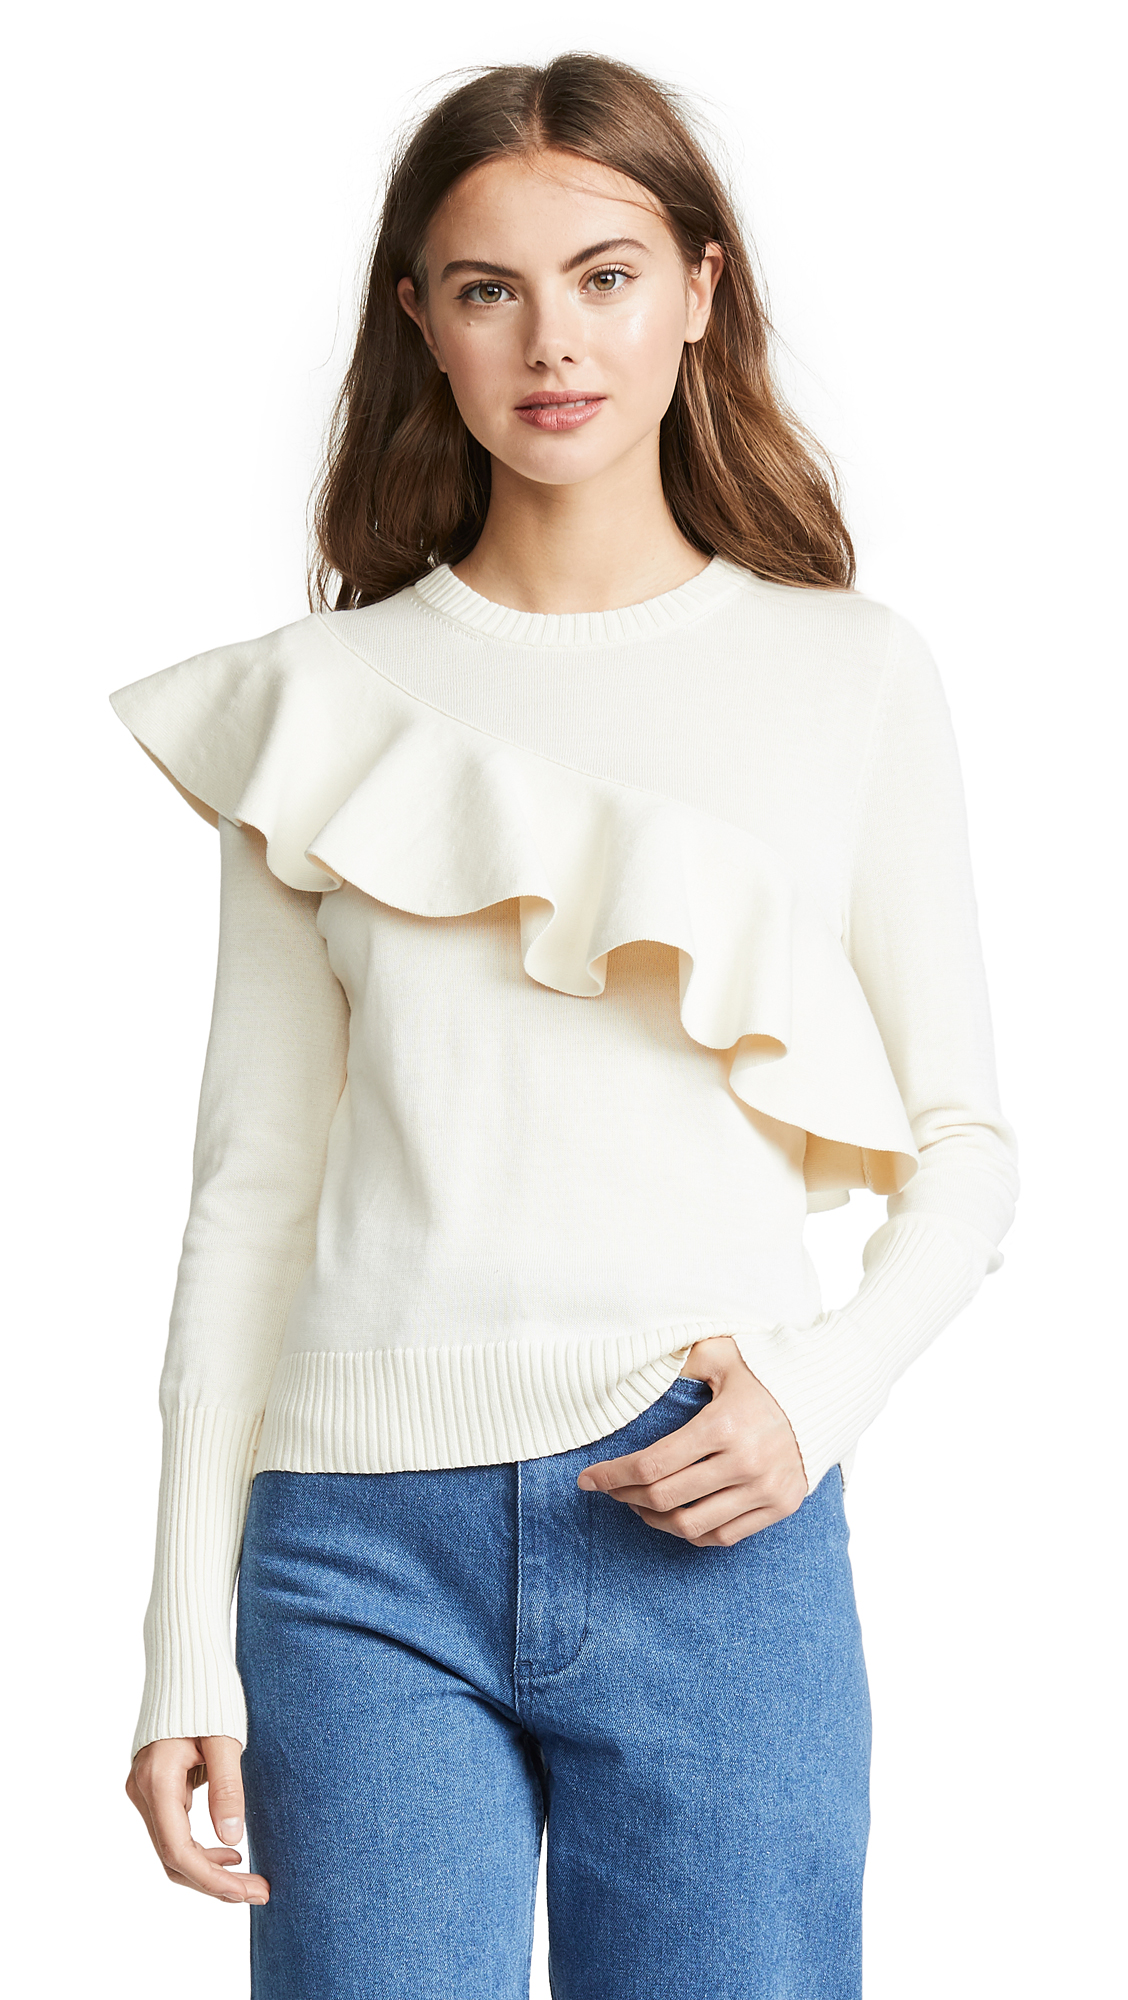 APIECE APART Sterre Ruffle Crew Neck Sweater in Ivory